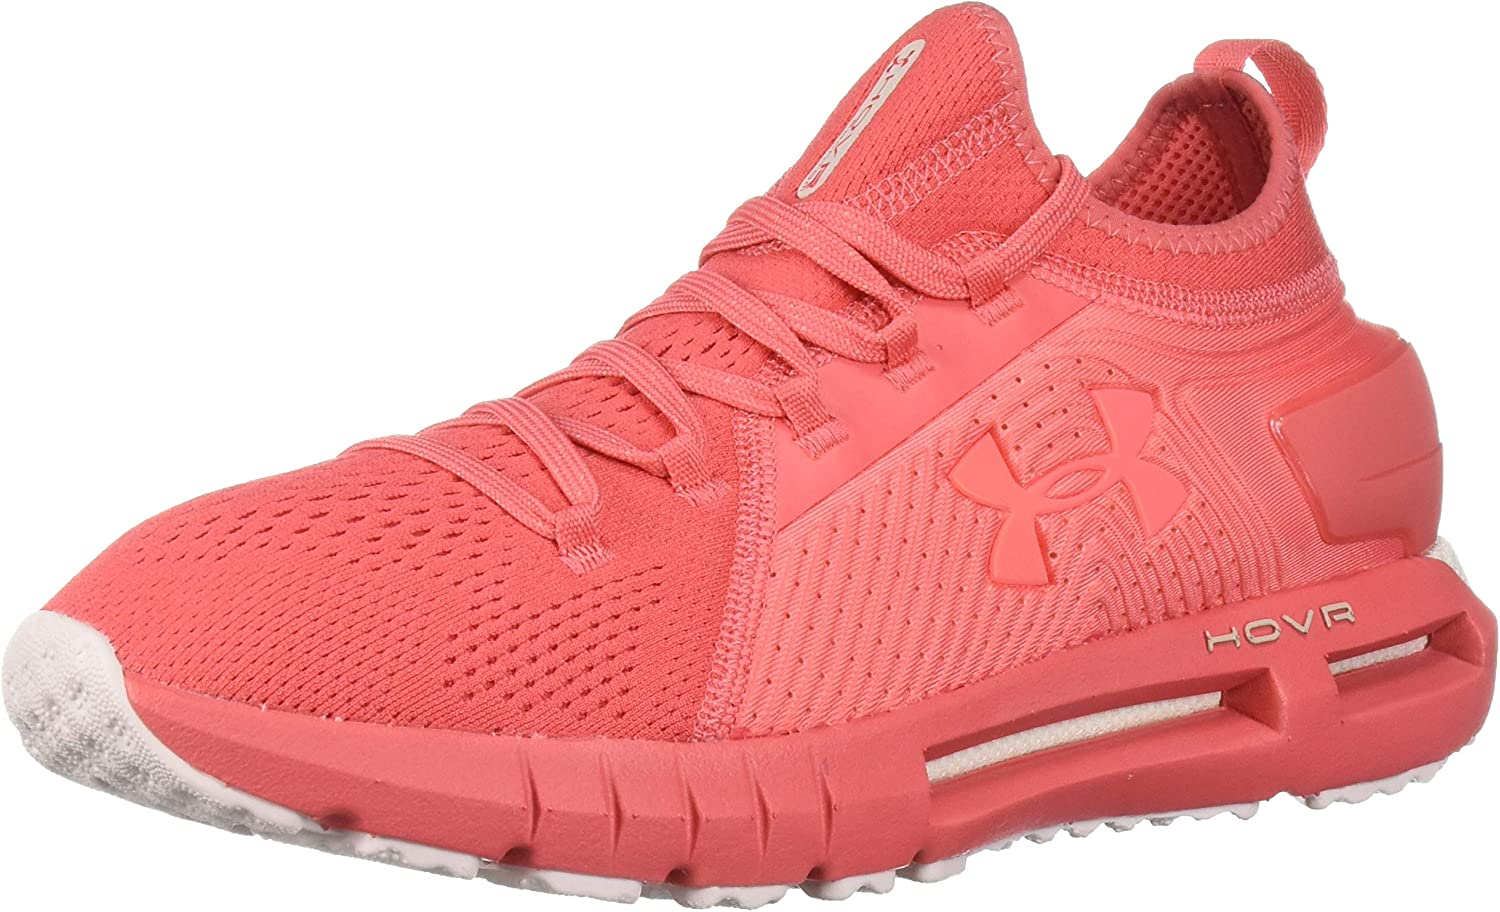 Under Armour 3021589-601_41 - Zapatillas de Running para Mujer, Color Rojo: Amazon.es: Zapatos y complementos